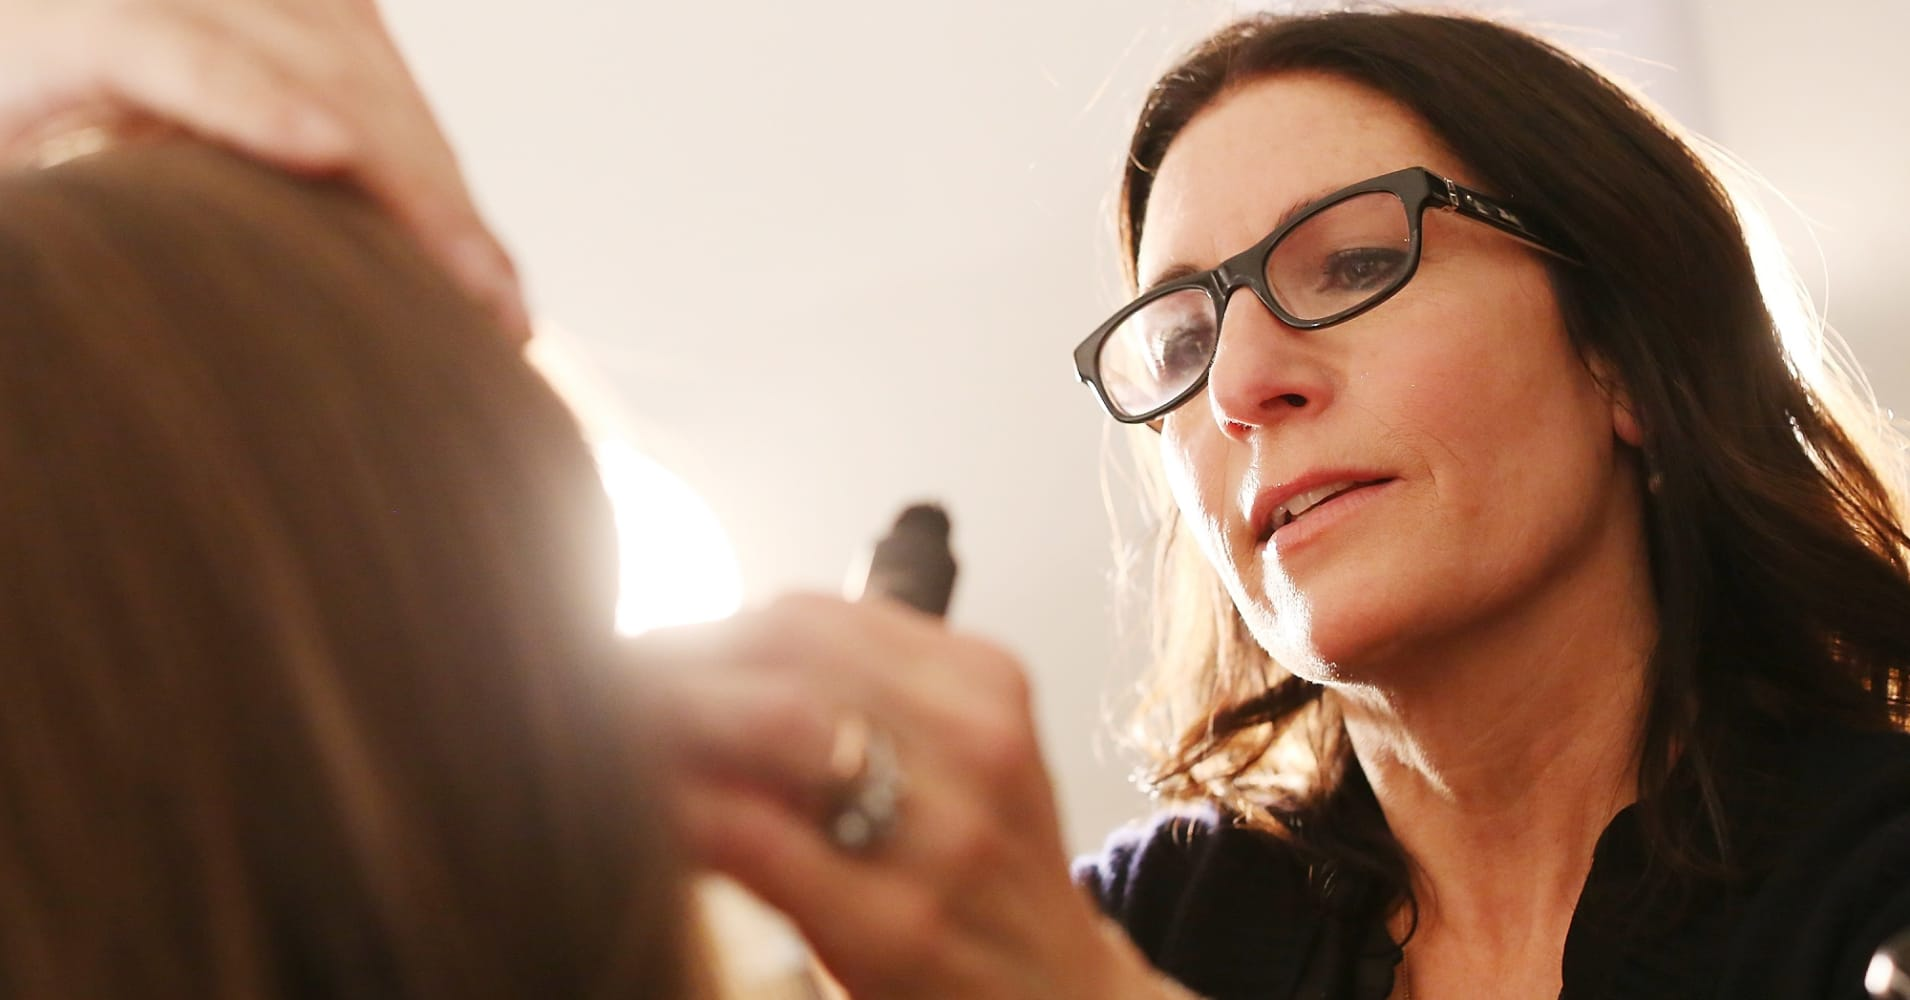 This is why Bobbi Brown says freelancers are the best hires